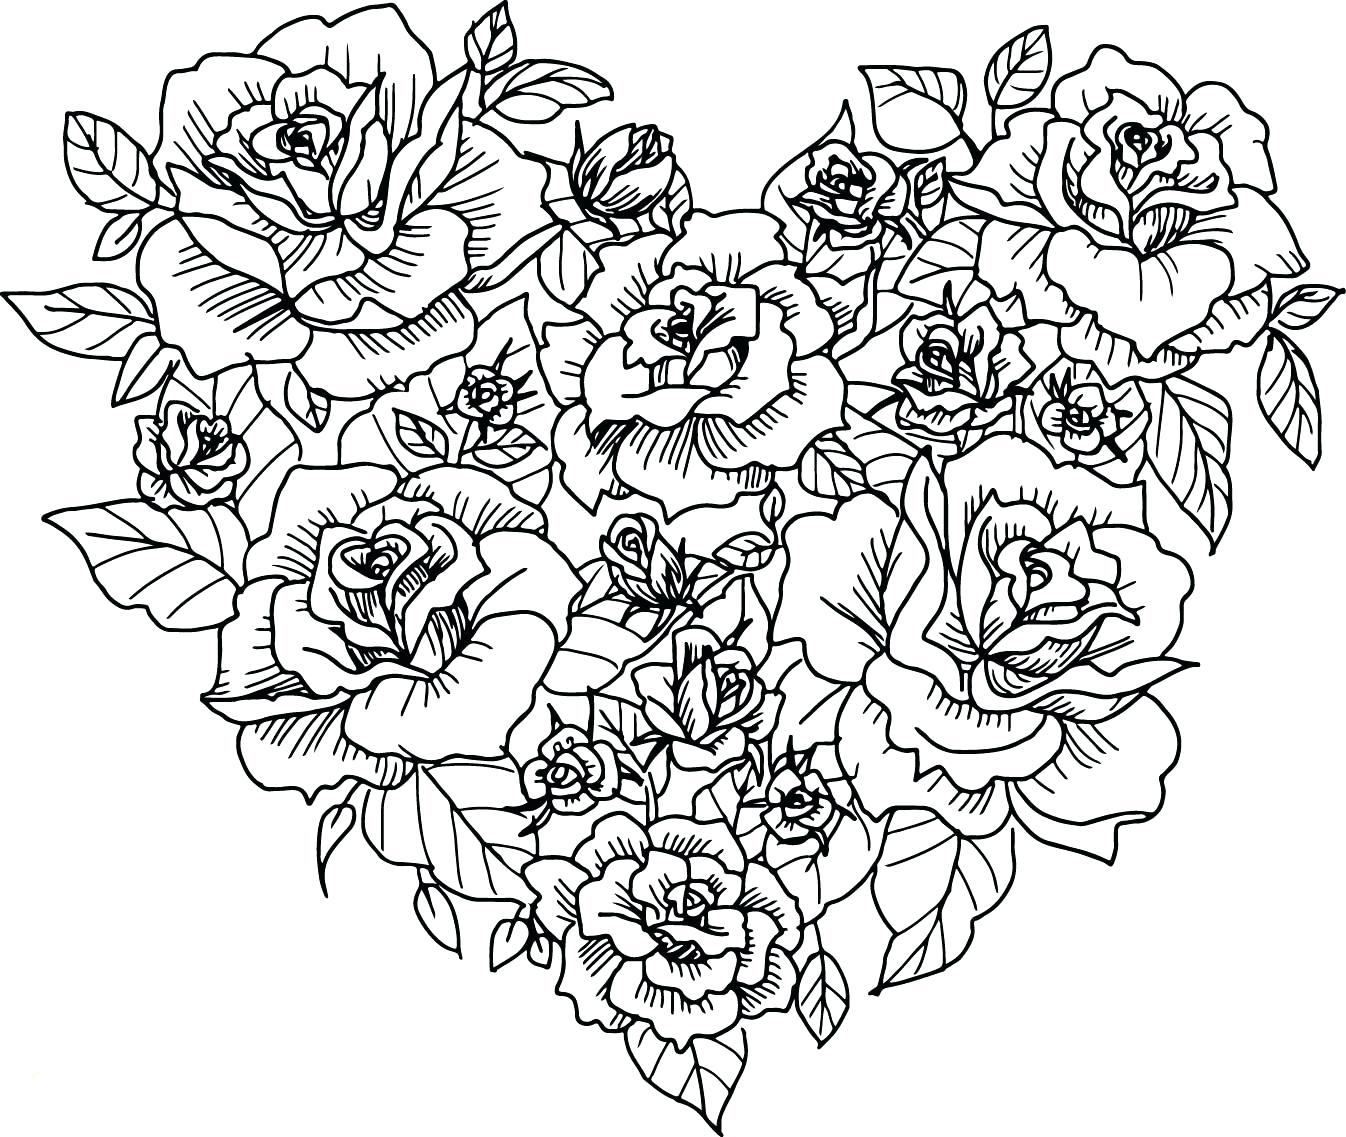 This is a picture of Irresistible Adult Coloring Pages Hearts